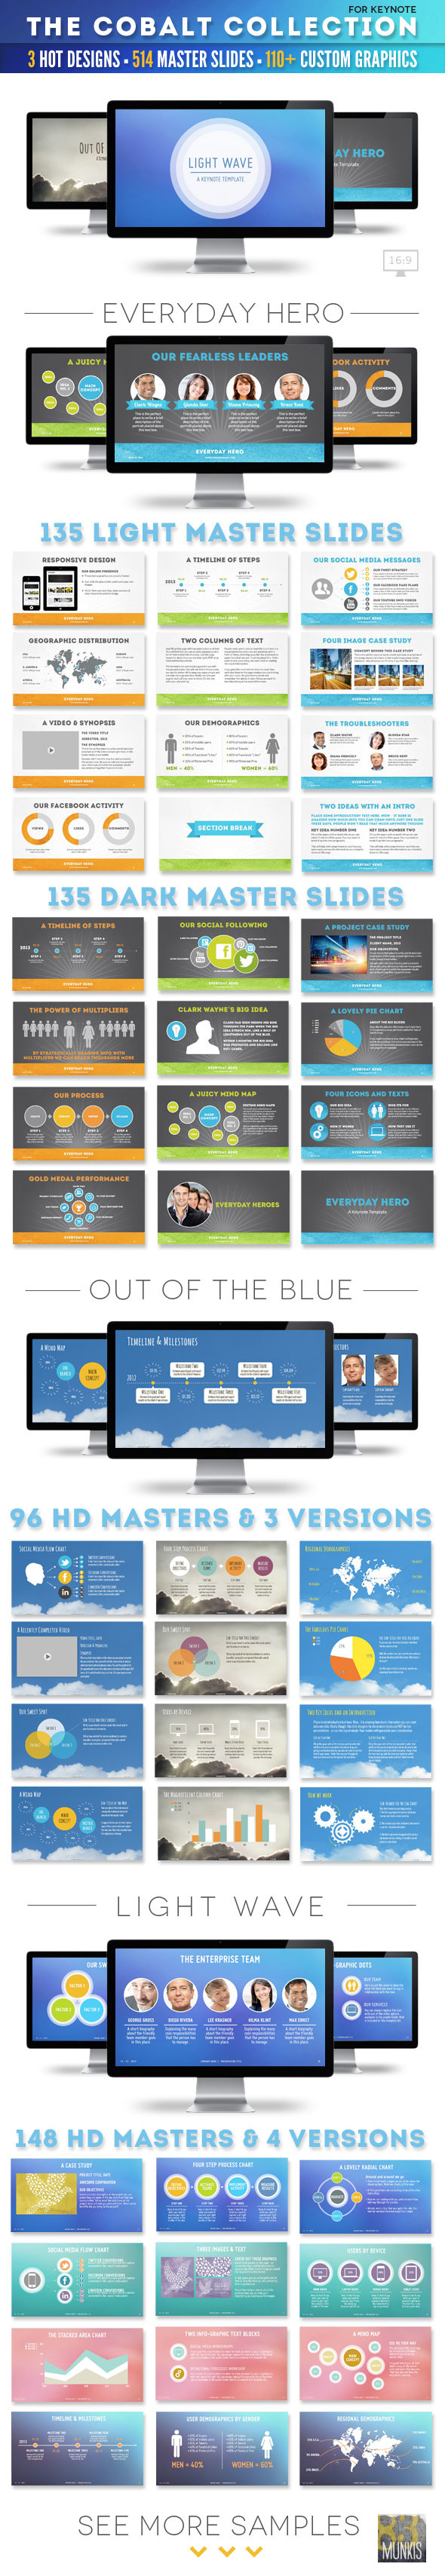 The Cobalt Collection of 3 Keynote Templates  - Keynote Templates Presentation Templates